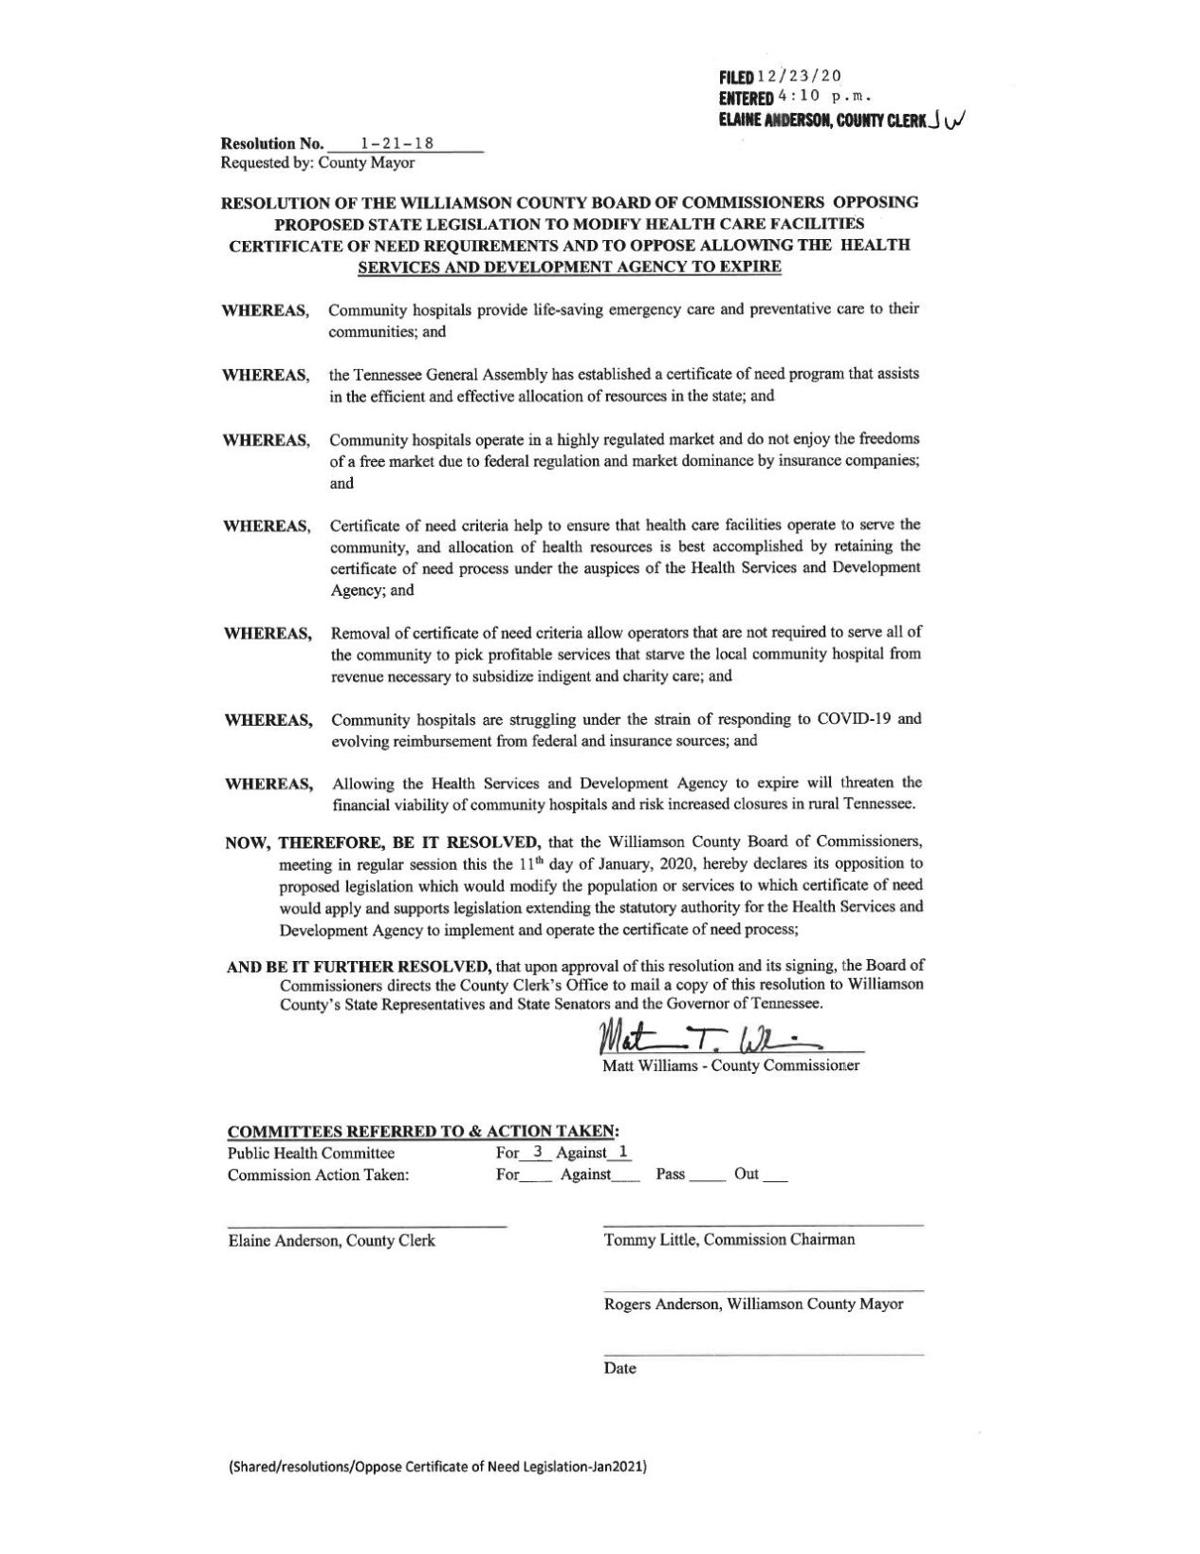 County commission resolution 1-21-18